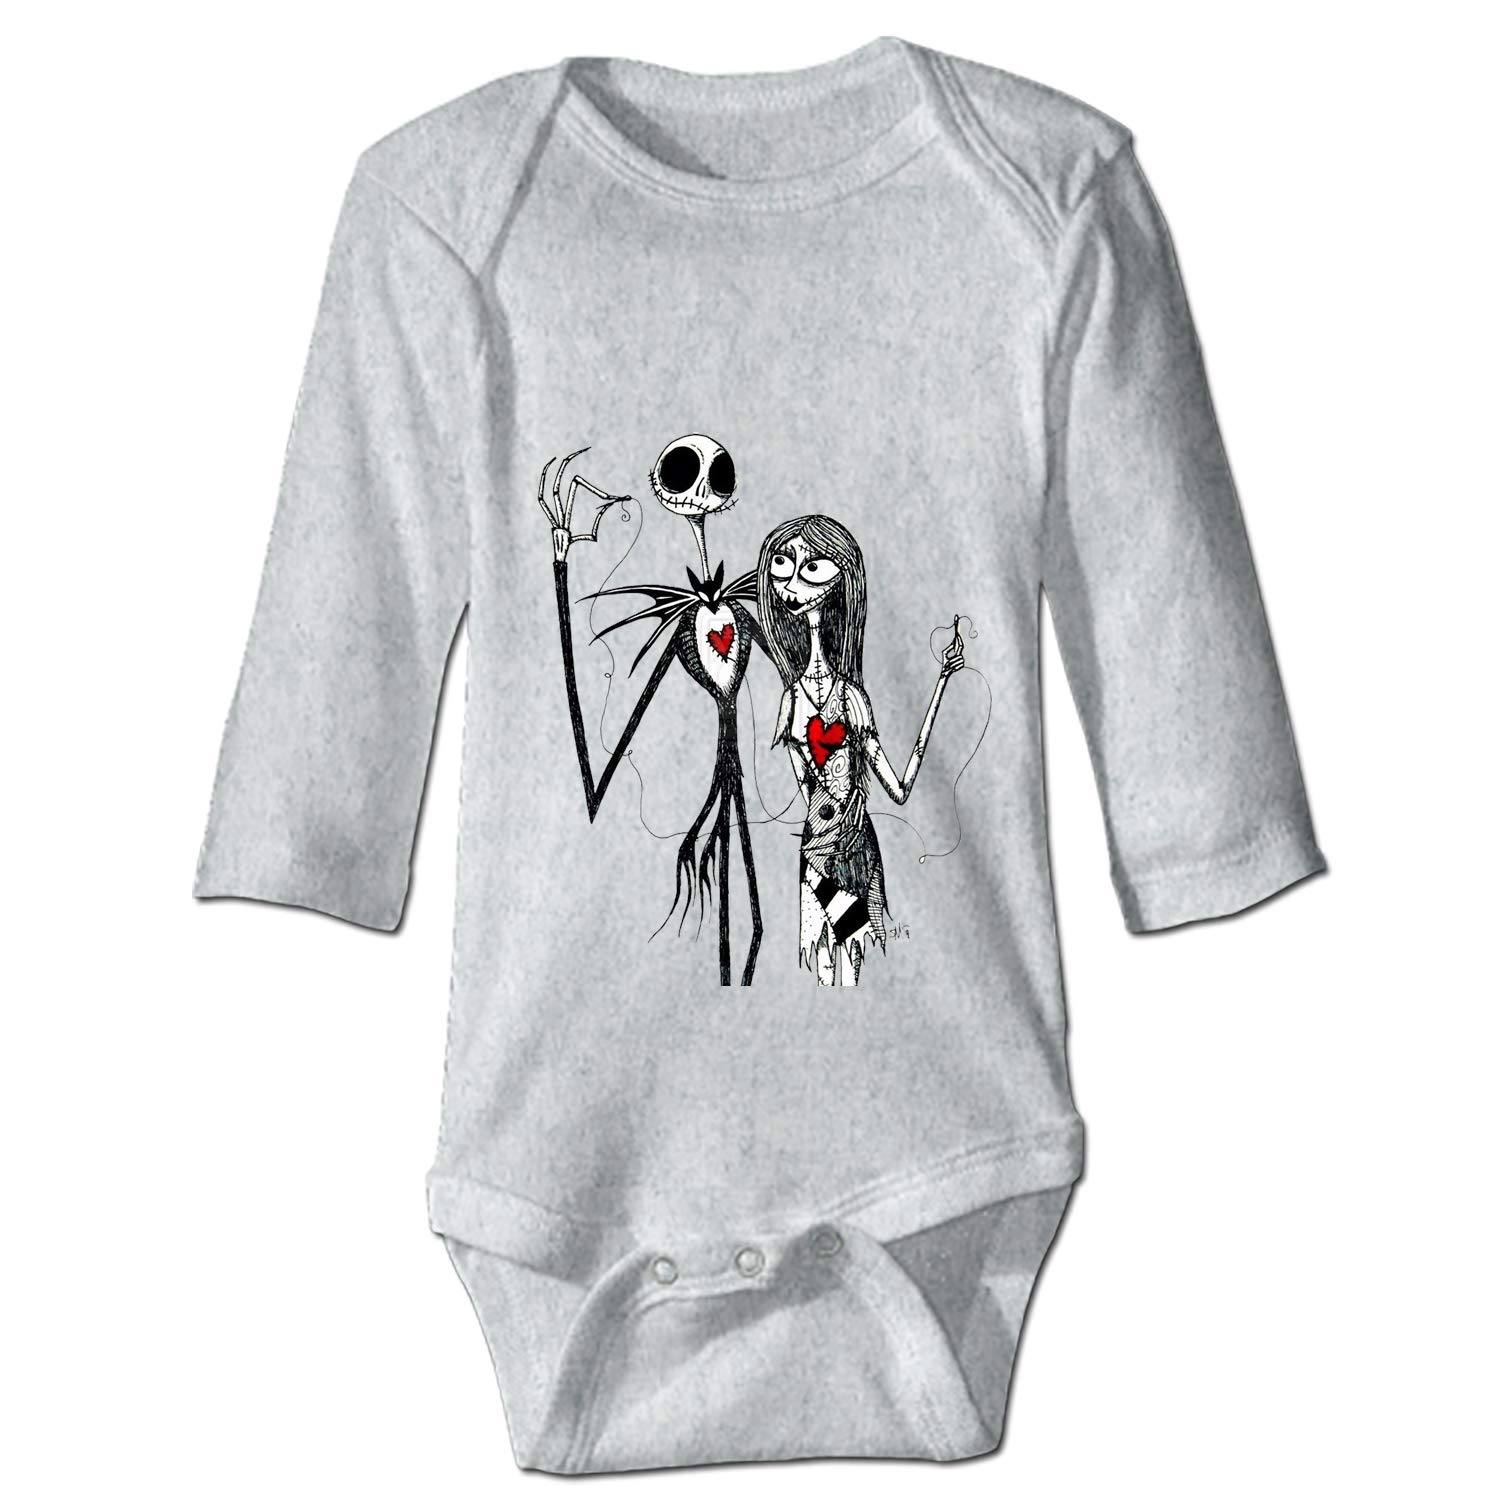 YSKHDBC Nightmare Before Christmas Printed Personalized Infant Bodysuit One-Piece